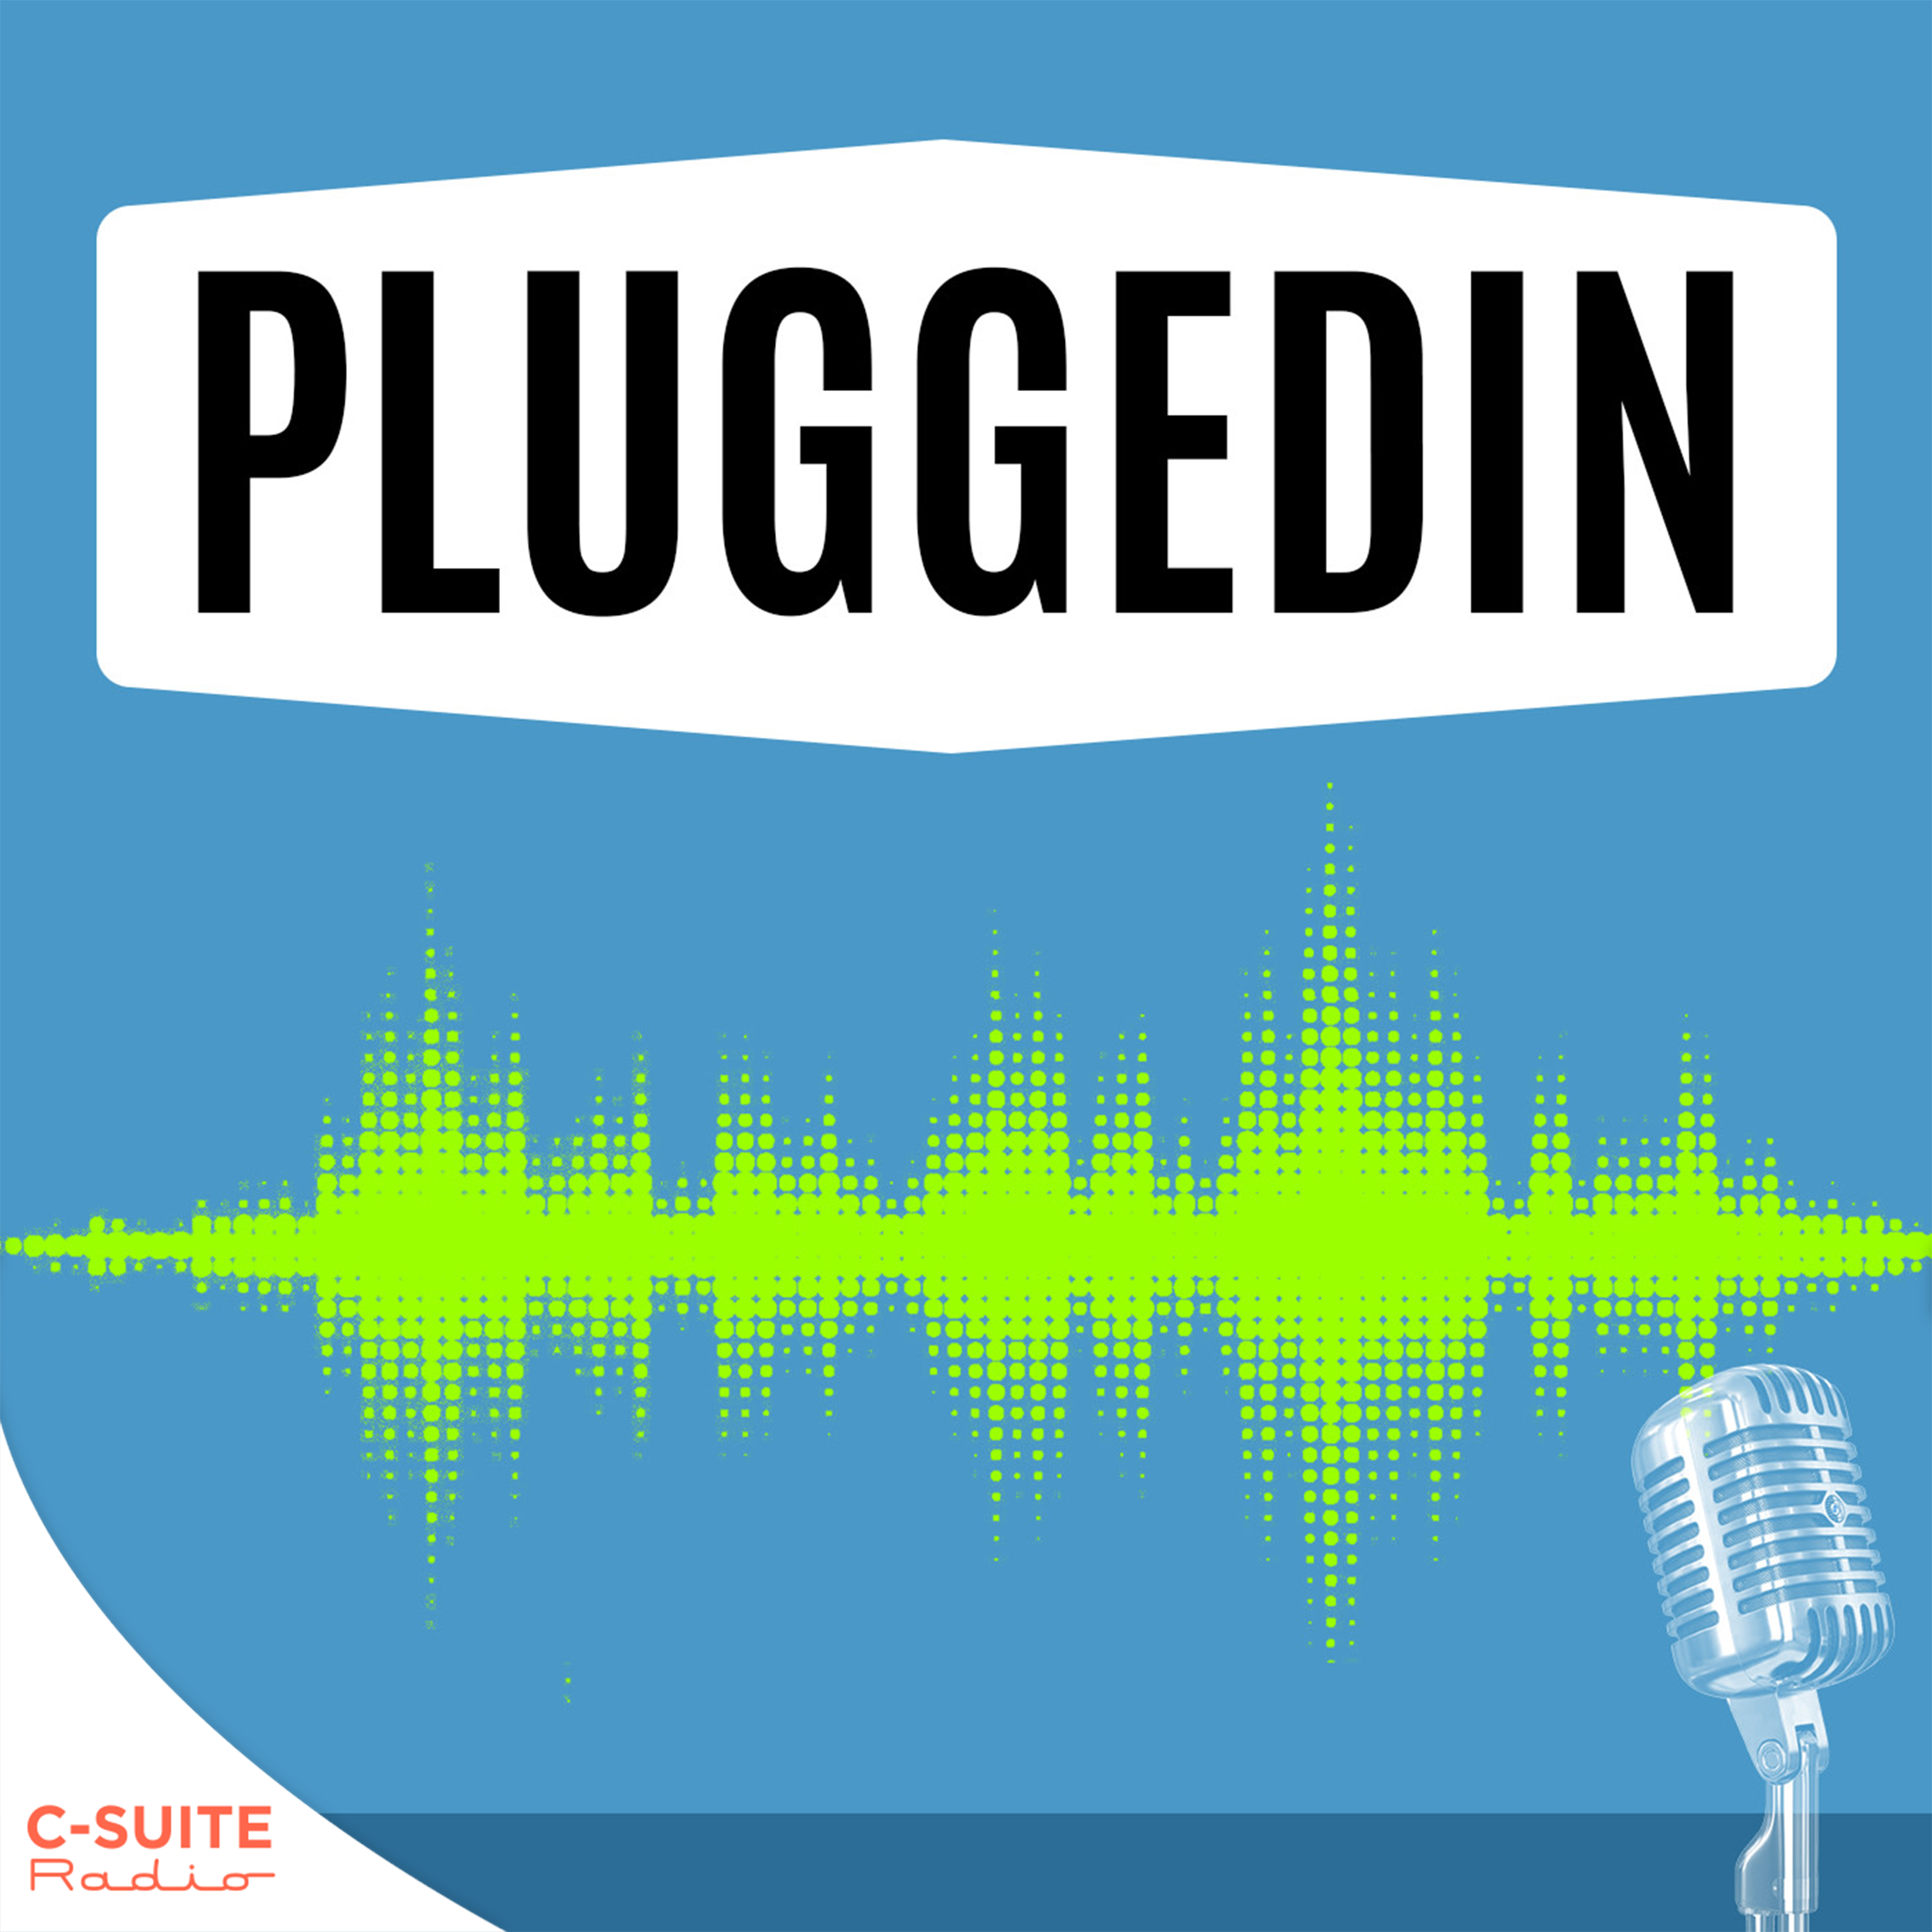 PLUGGEDIN